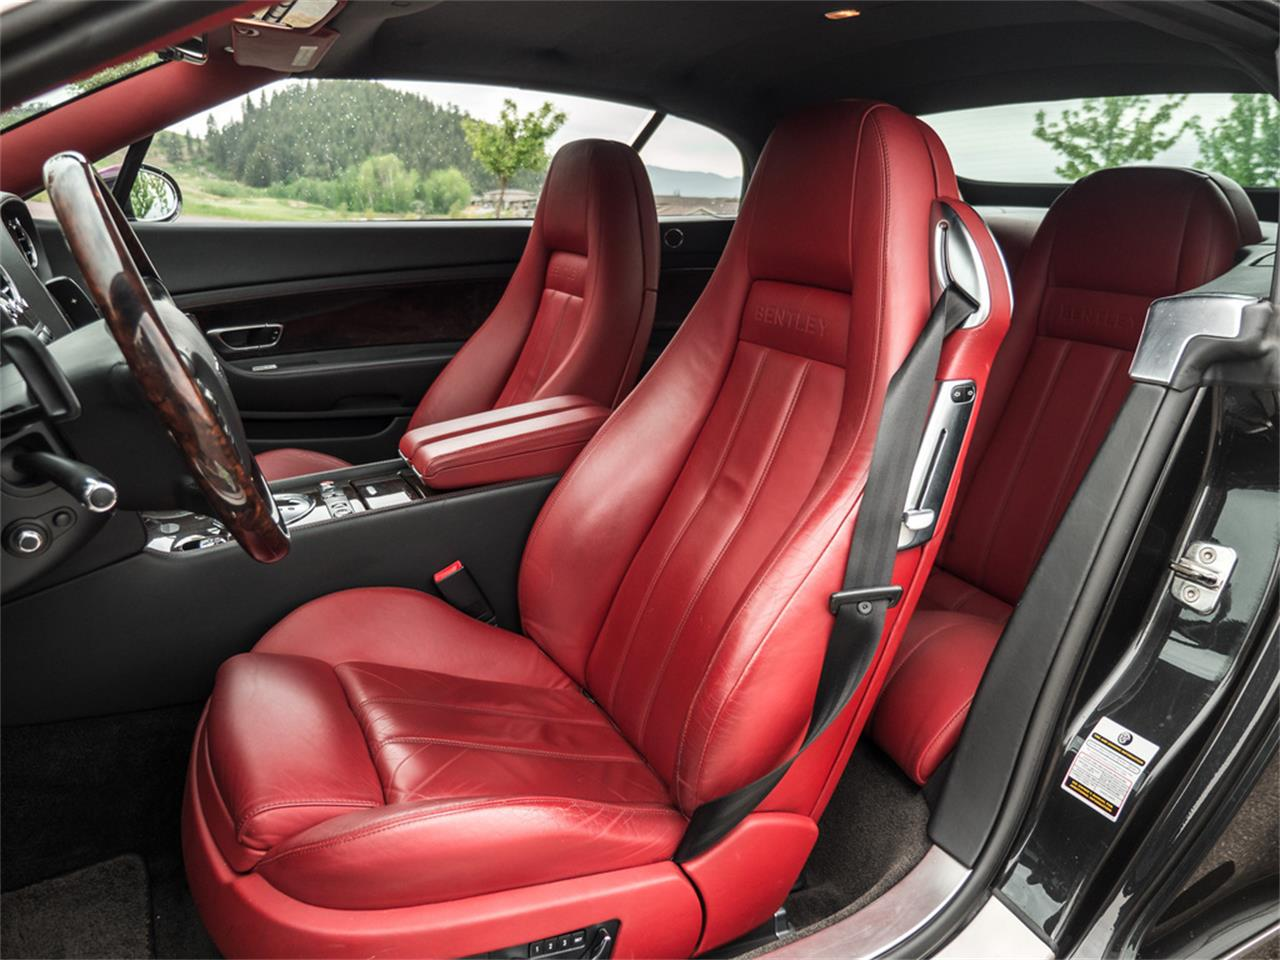 Large Picture of 2007 Continental located in Kelowna British Columbia - $61,210.00 Offered by August Motorcars - Q9QU